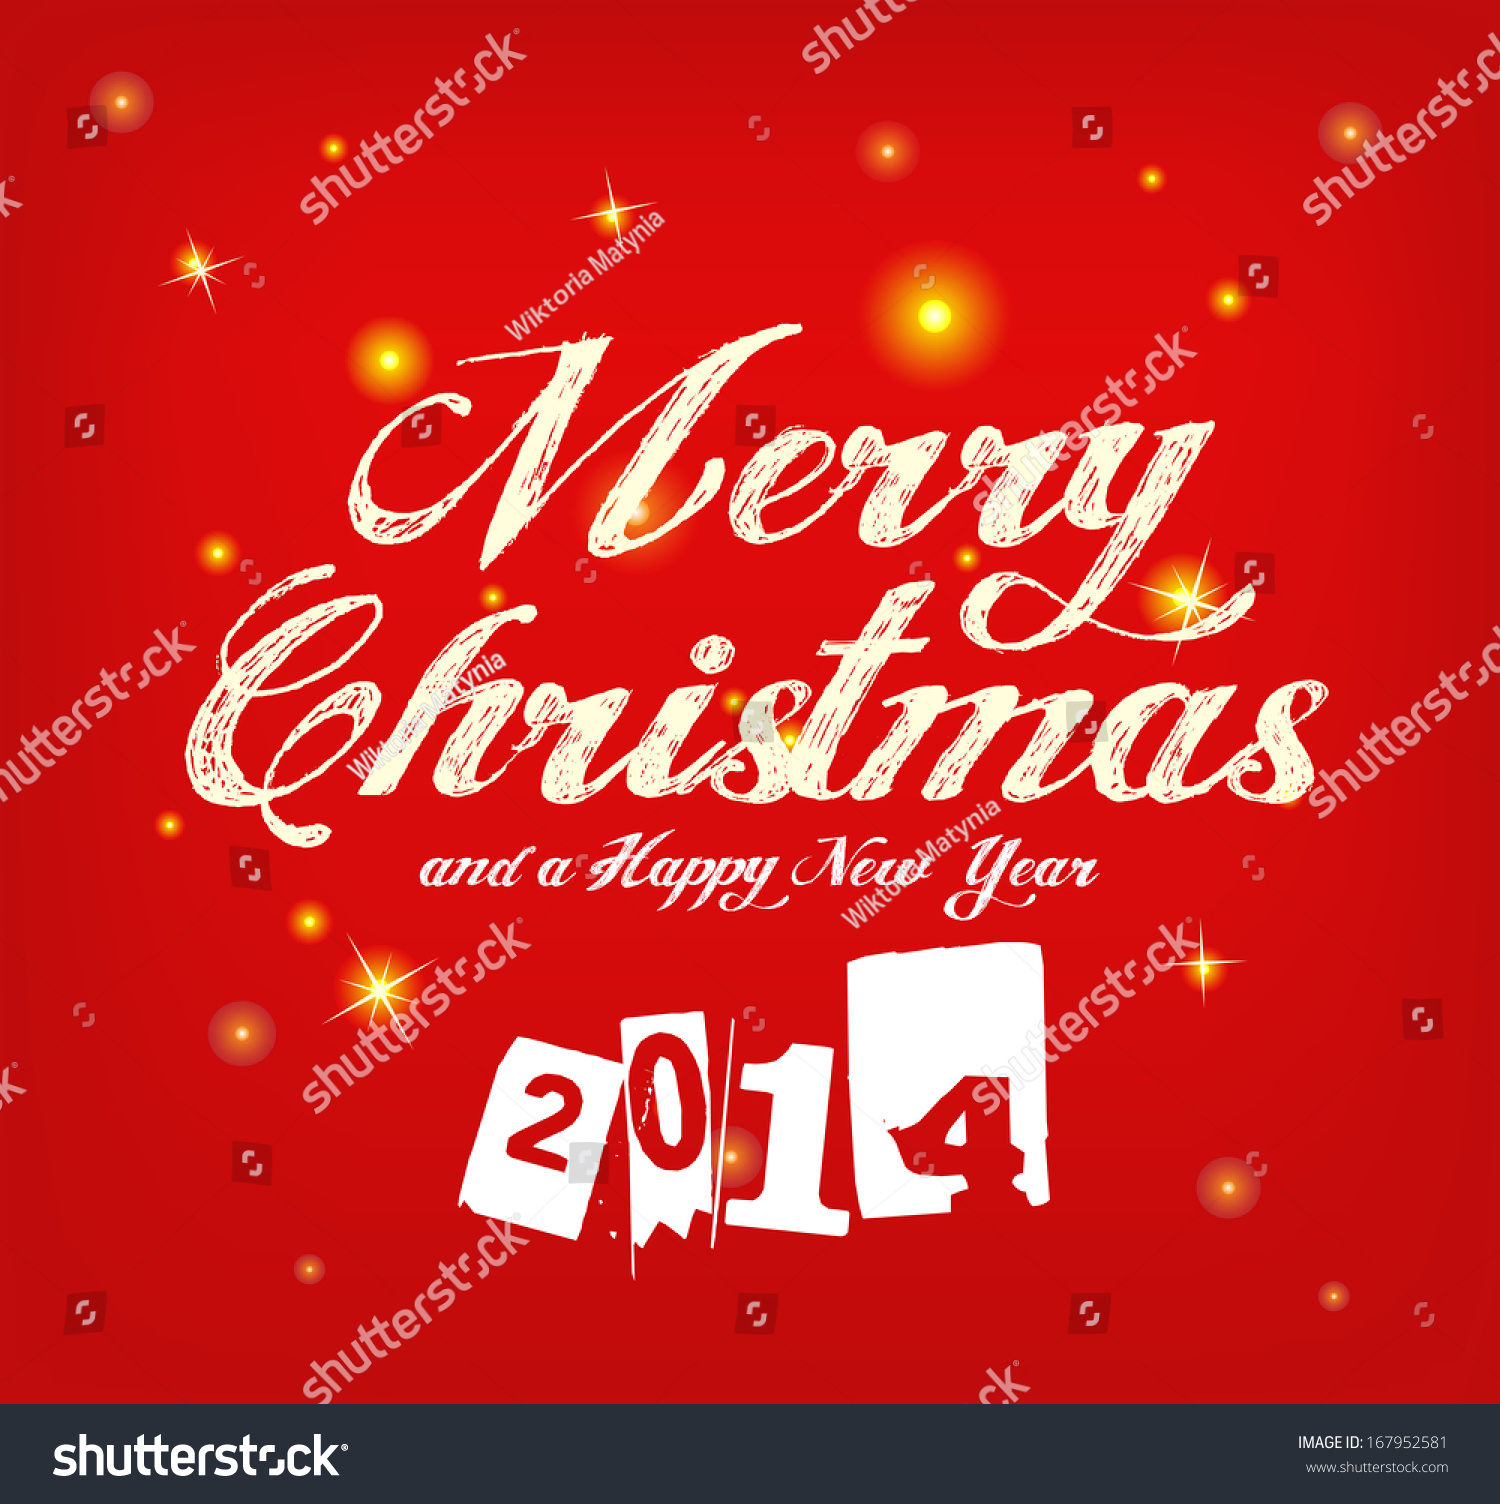 Beautiful red greeting card sparkling background stock vector beautiful red greeting card with sparkling background merry christmas and a happy new year 2014 m4hsunfo